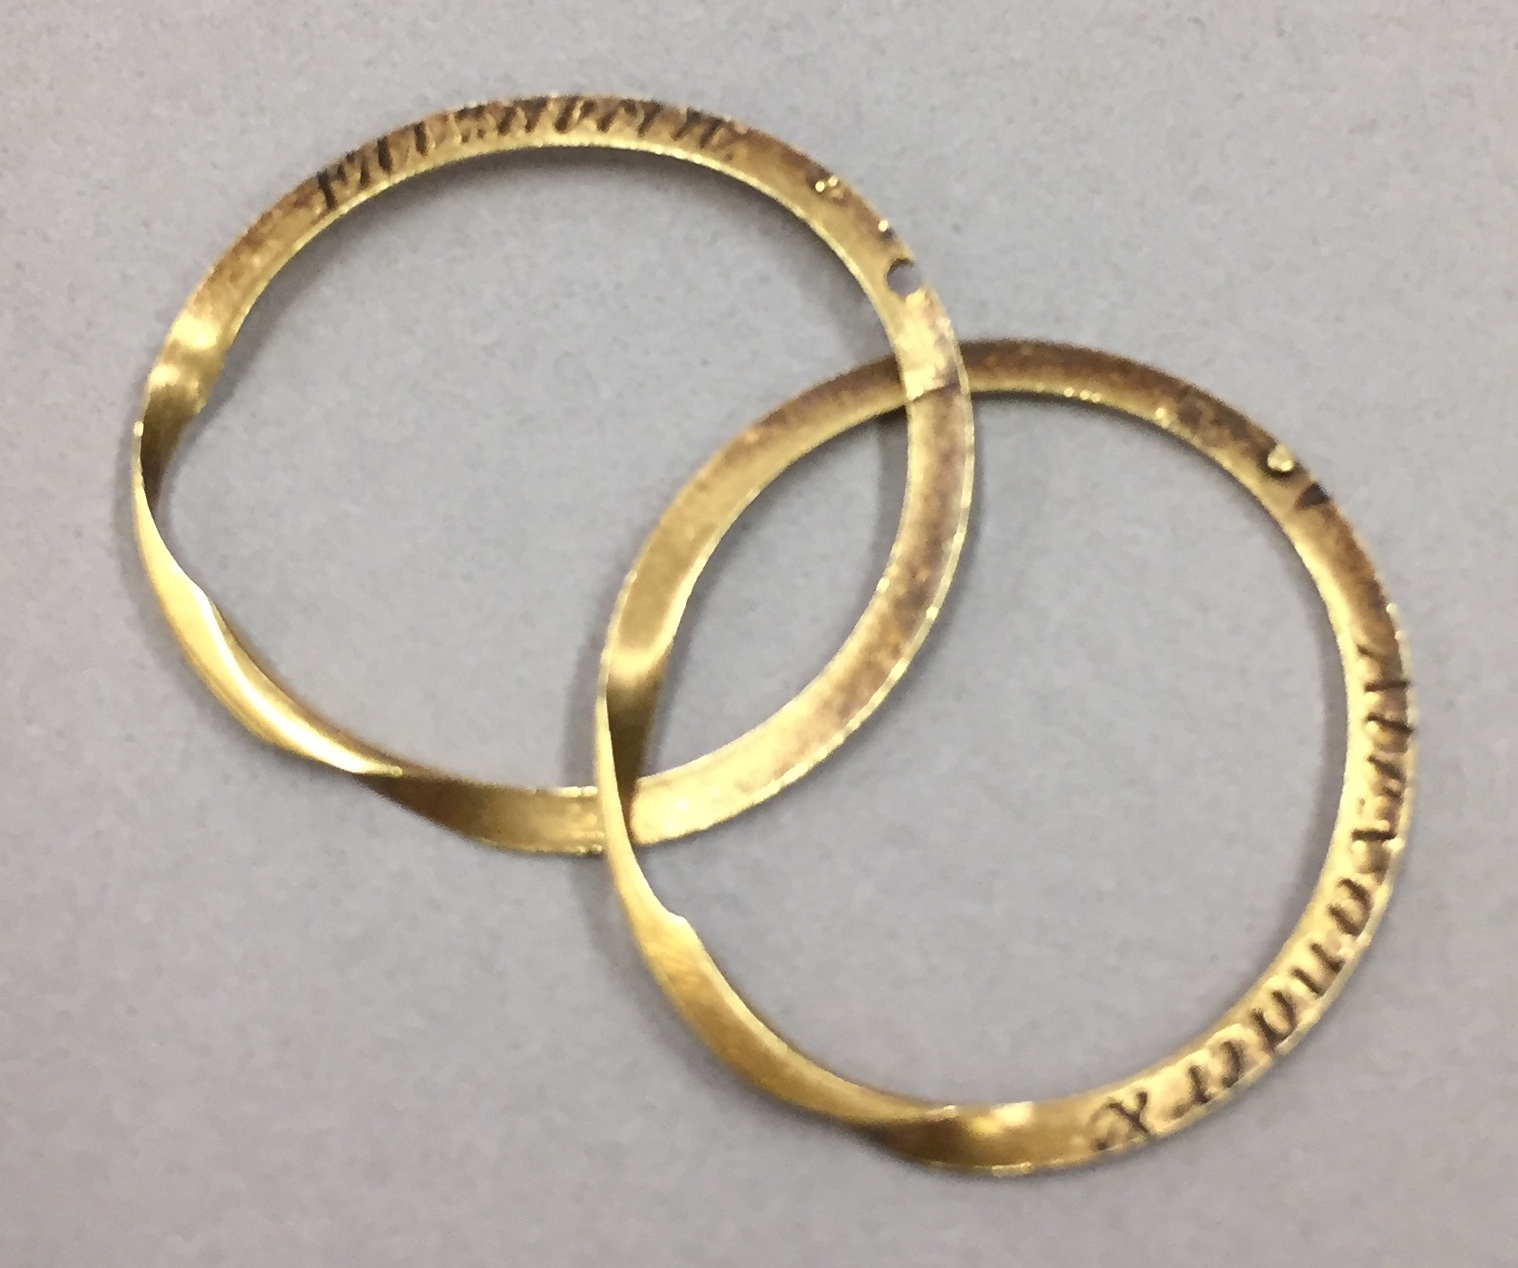 The Wedding Ring That Alexander Hamilton Gave To Elizabeth Schuyler, 1780